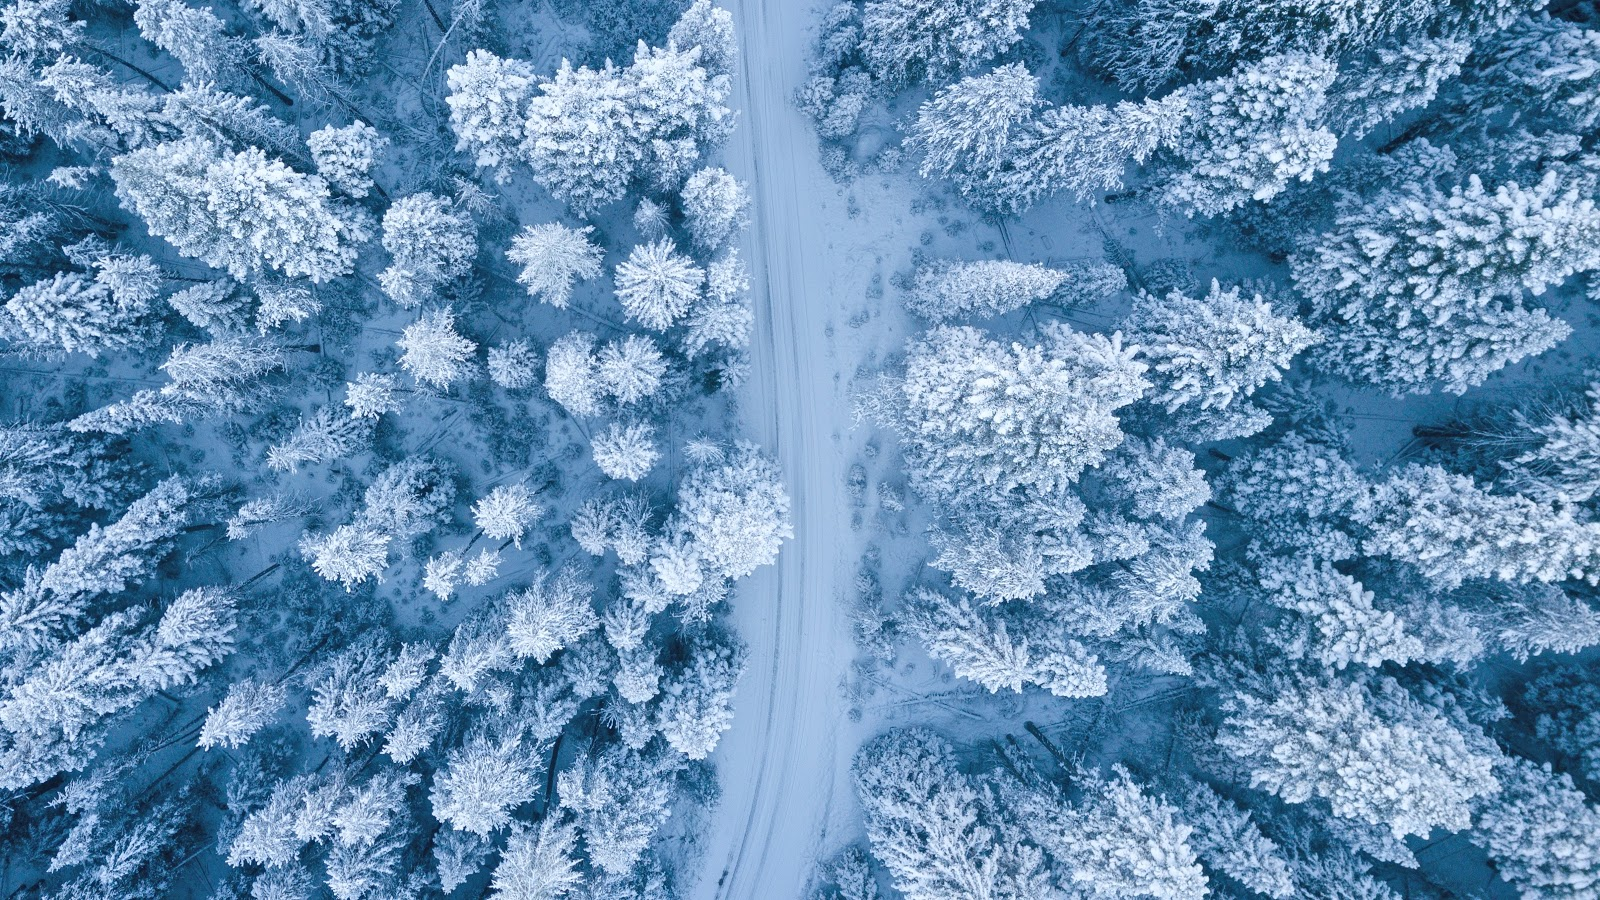 aerial-photography-of-snow-covered-trees-nature-pictures